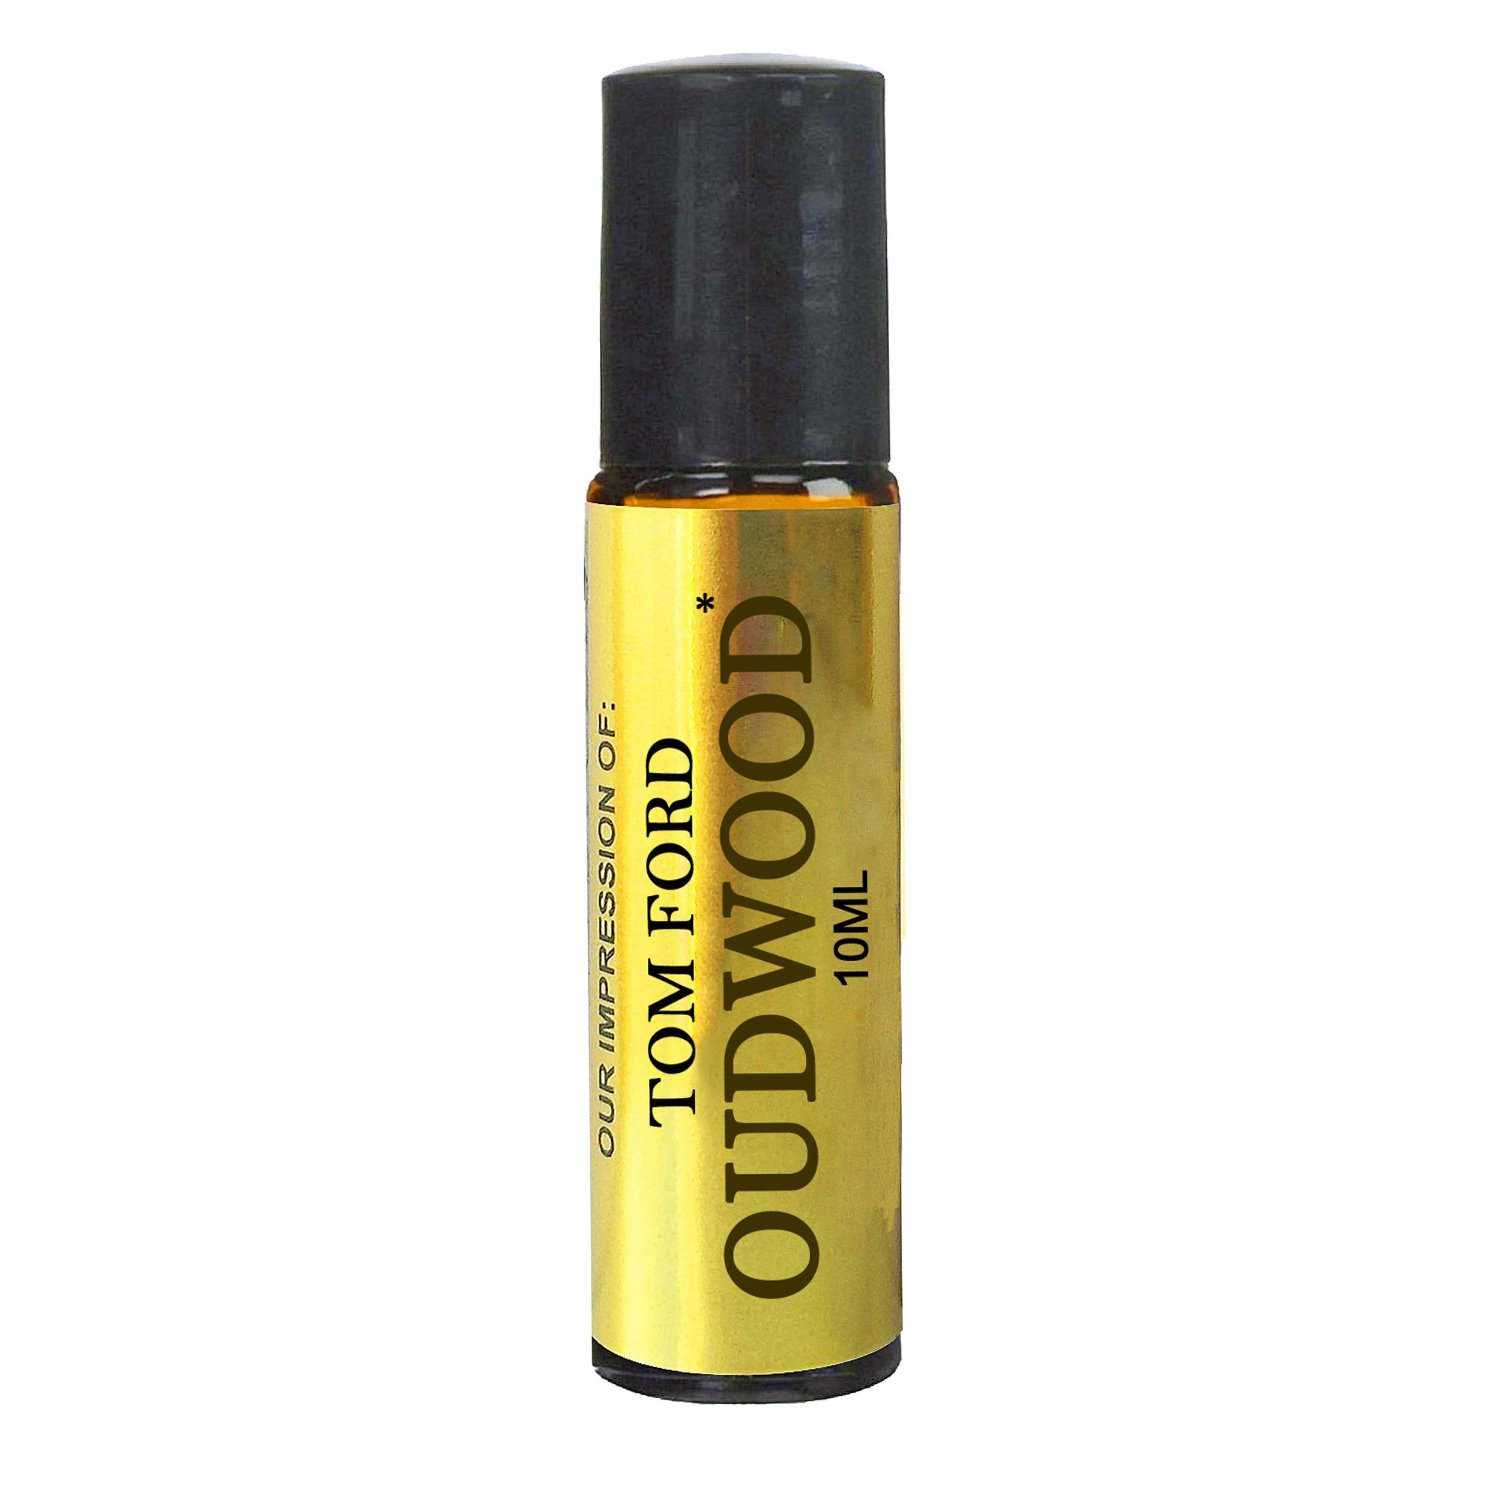 Buy Oud Wood Oil IMPRESSION of Tom Ford Oud Wood Cologne for Men